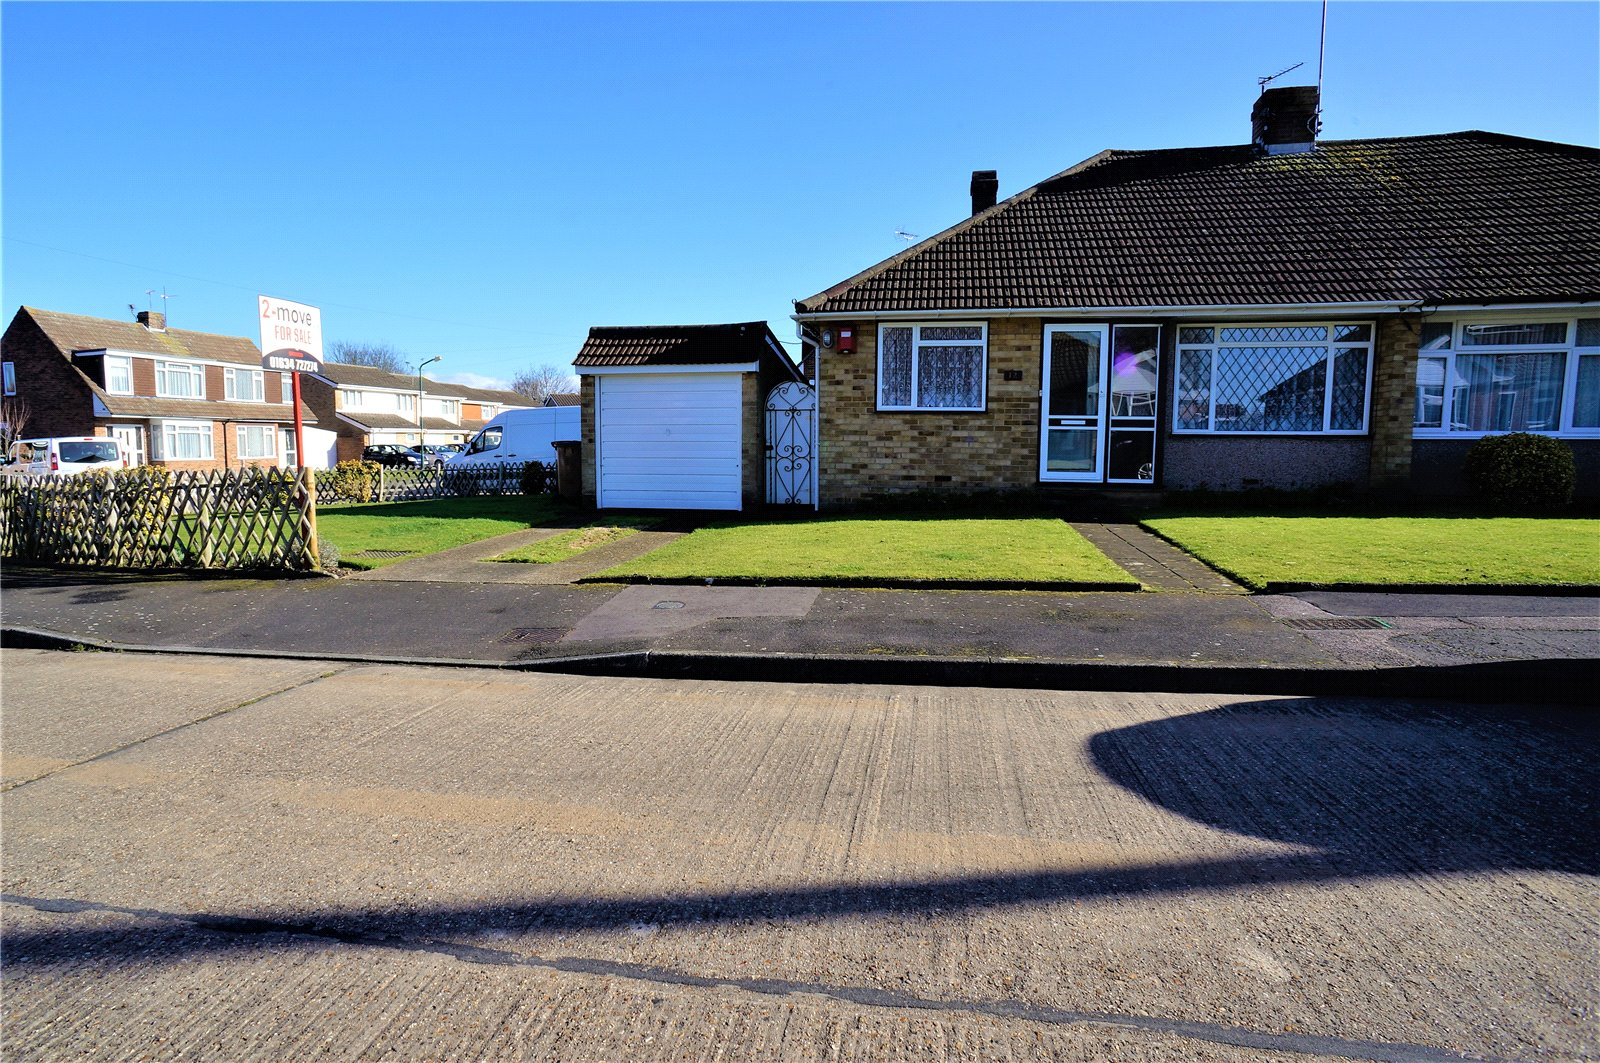 2 Bedrooms Semi Detached Bungalow for sale in Romsey Close, Rochester, Kent, ME2